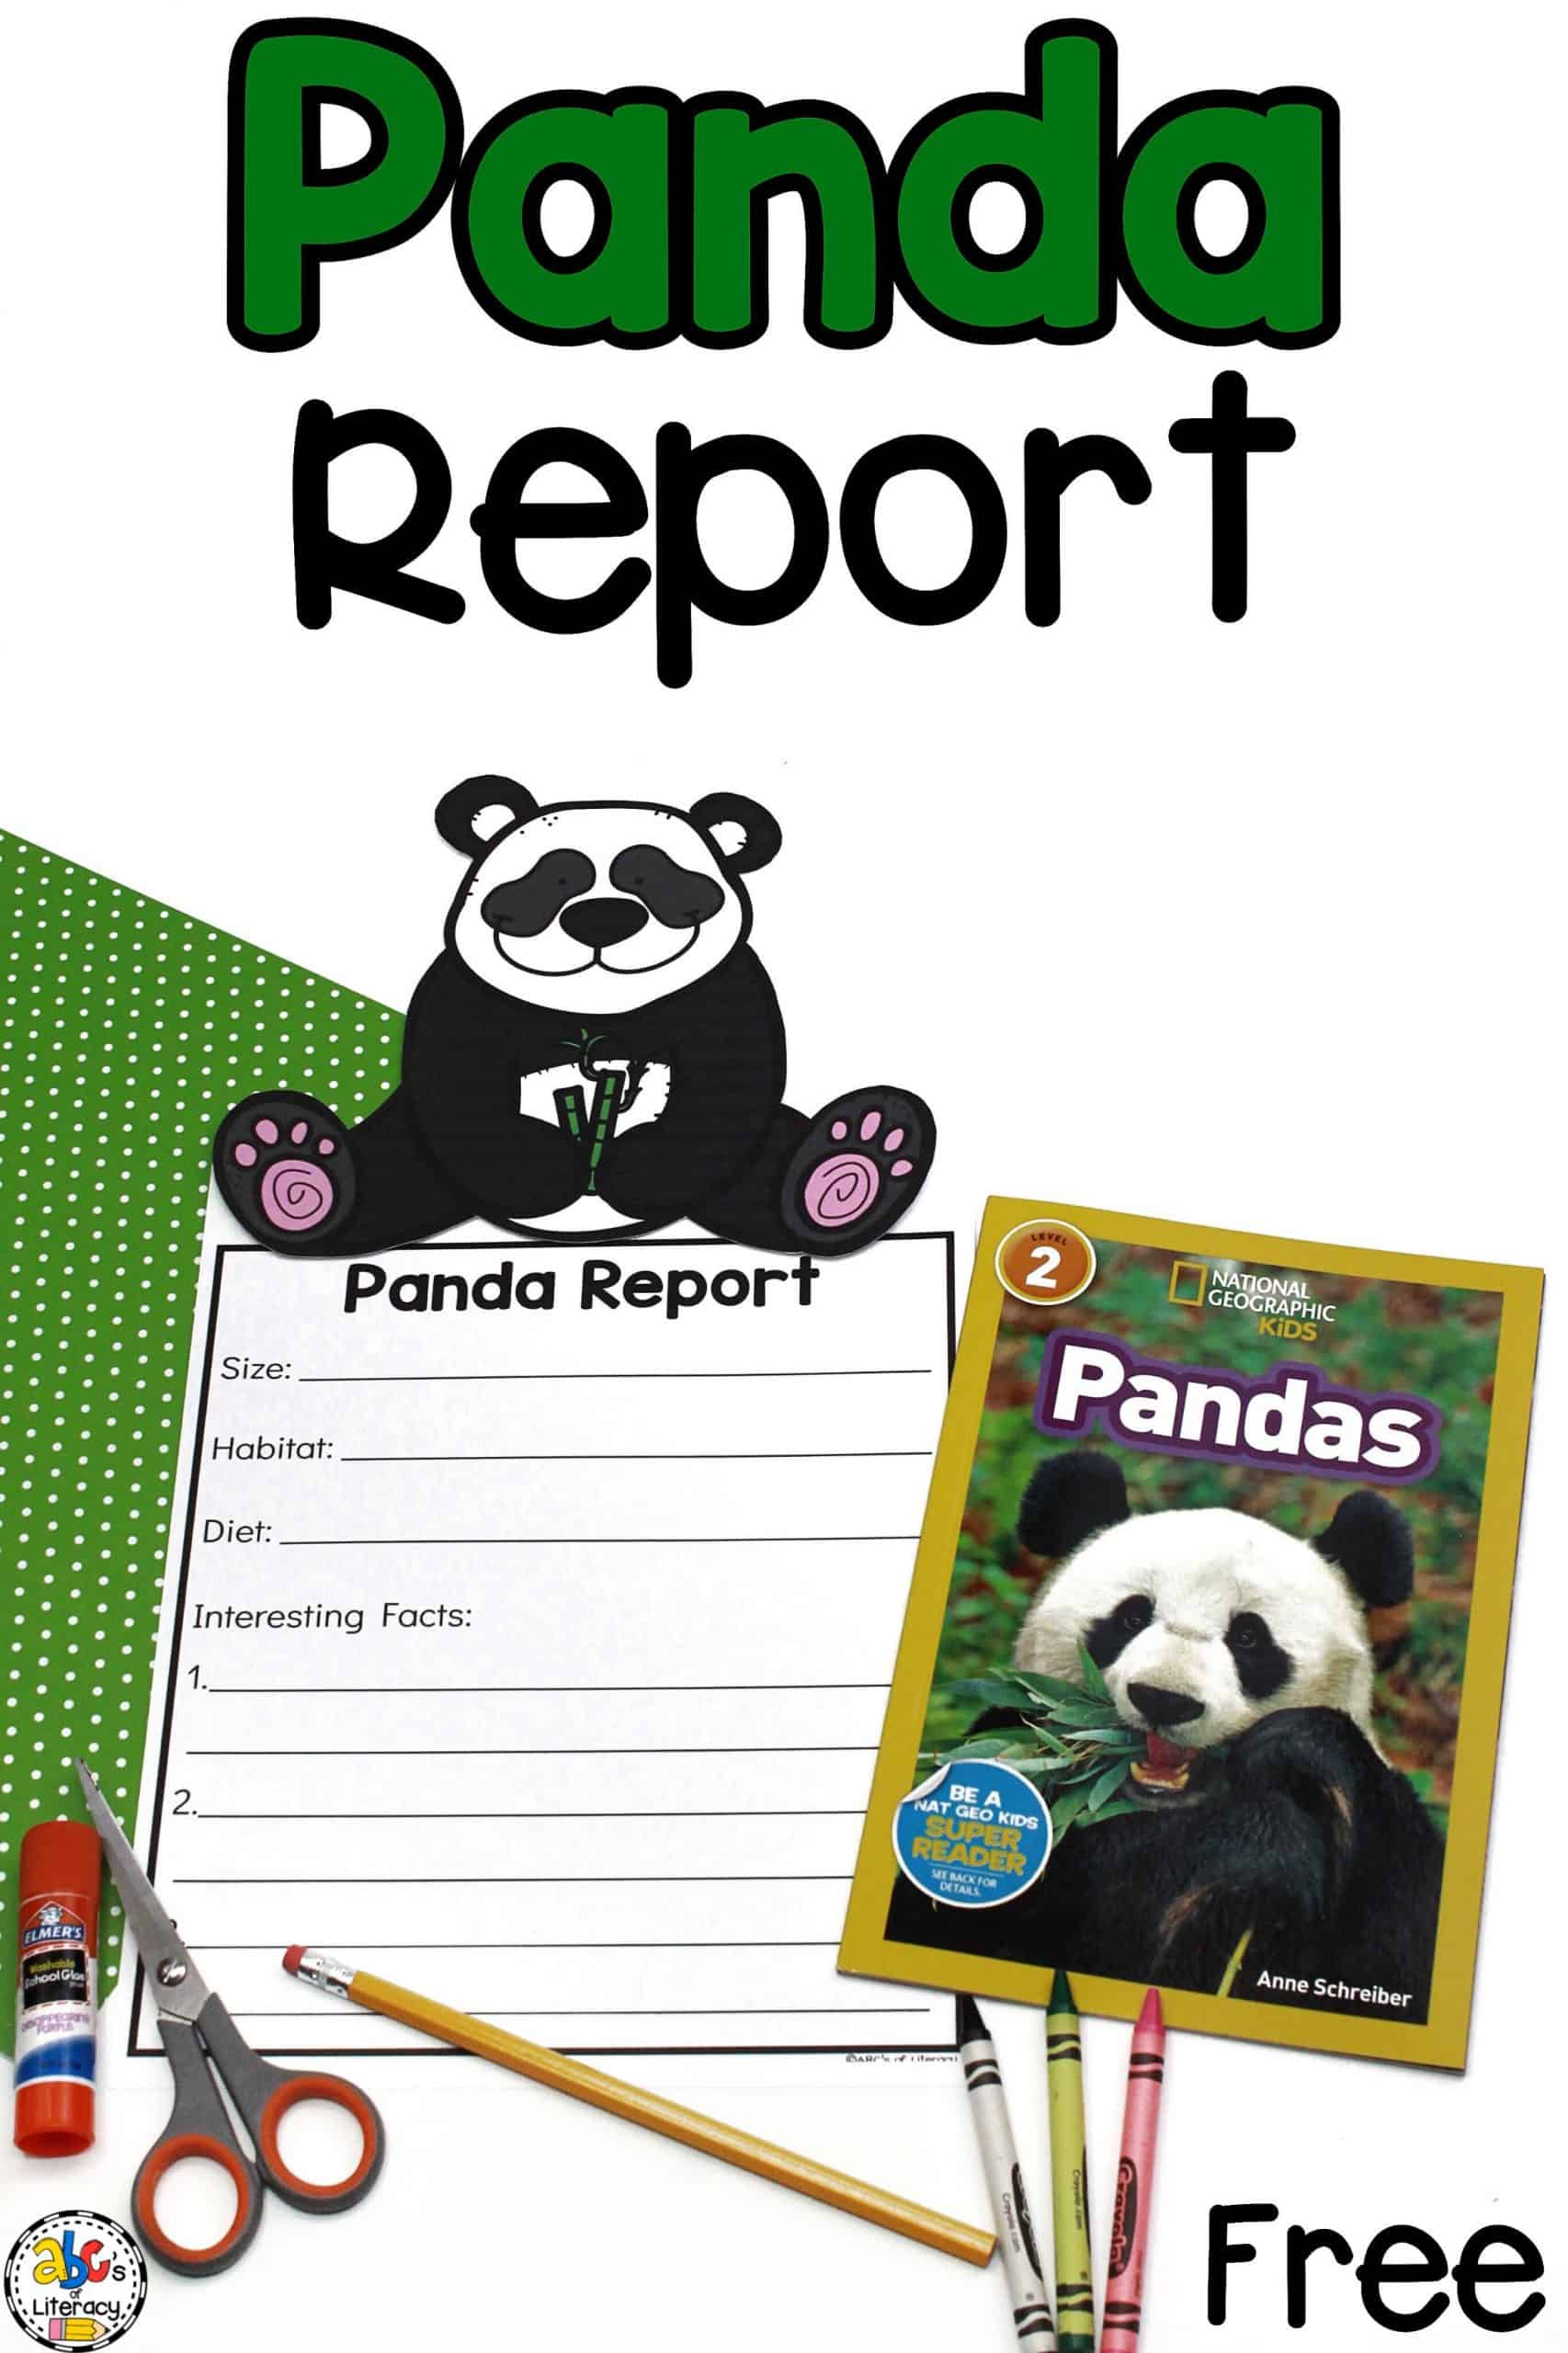 Panda Report Template and Panda Page Topper